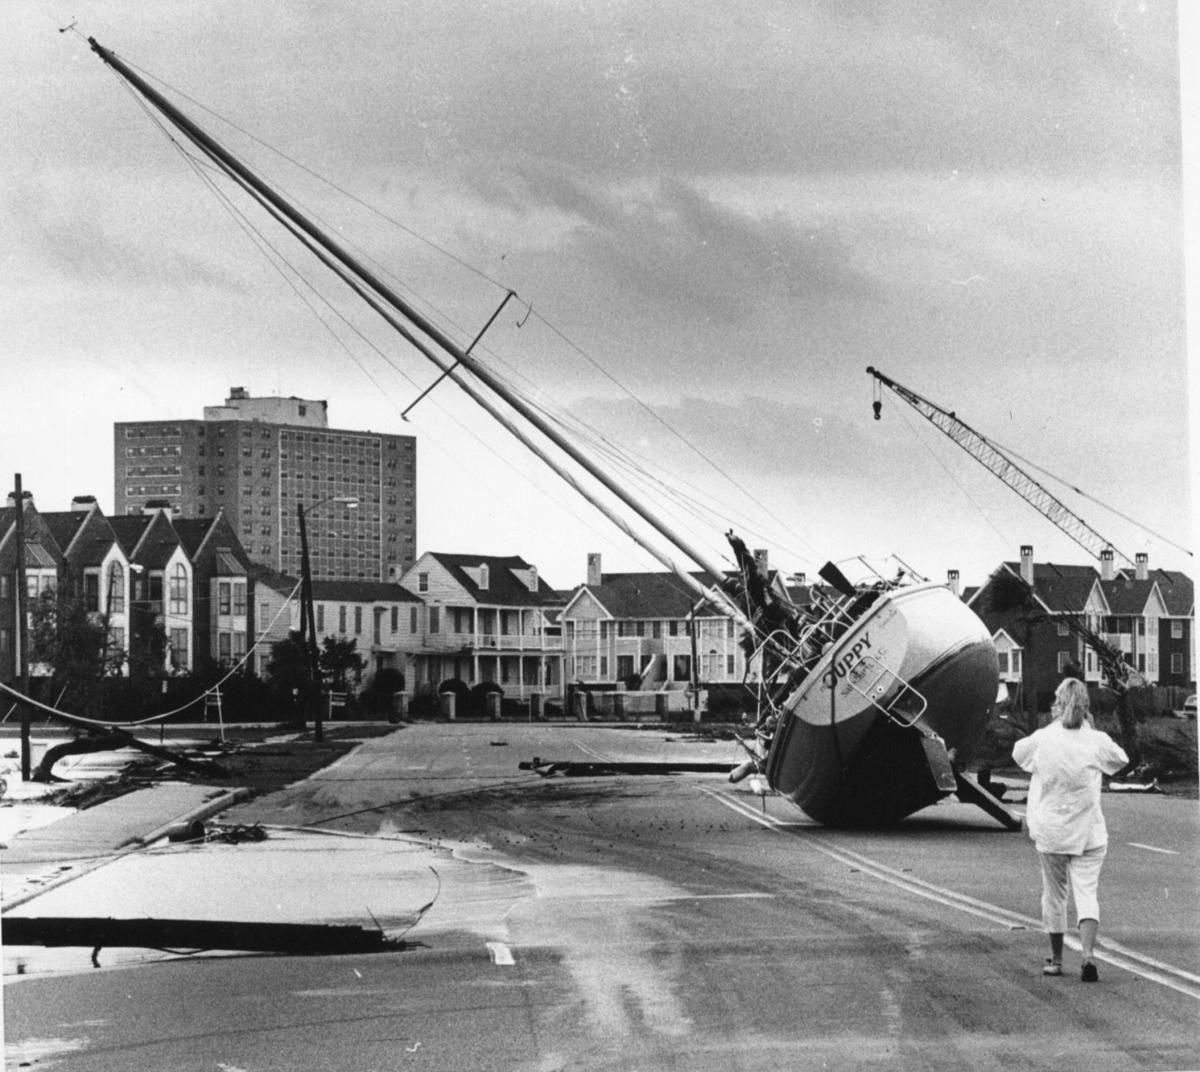 Charleston after Hurricane Hugo